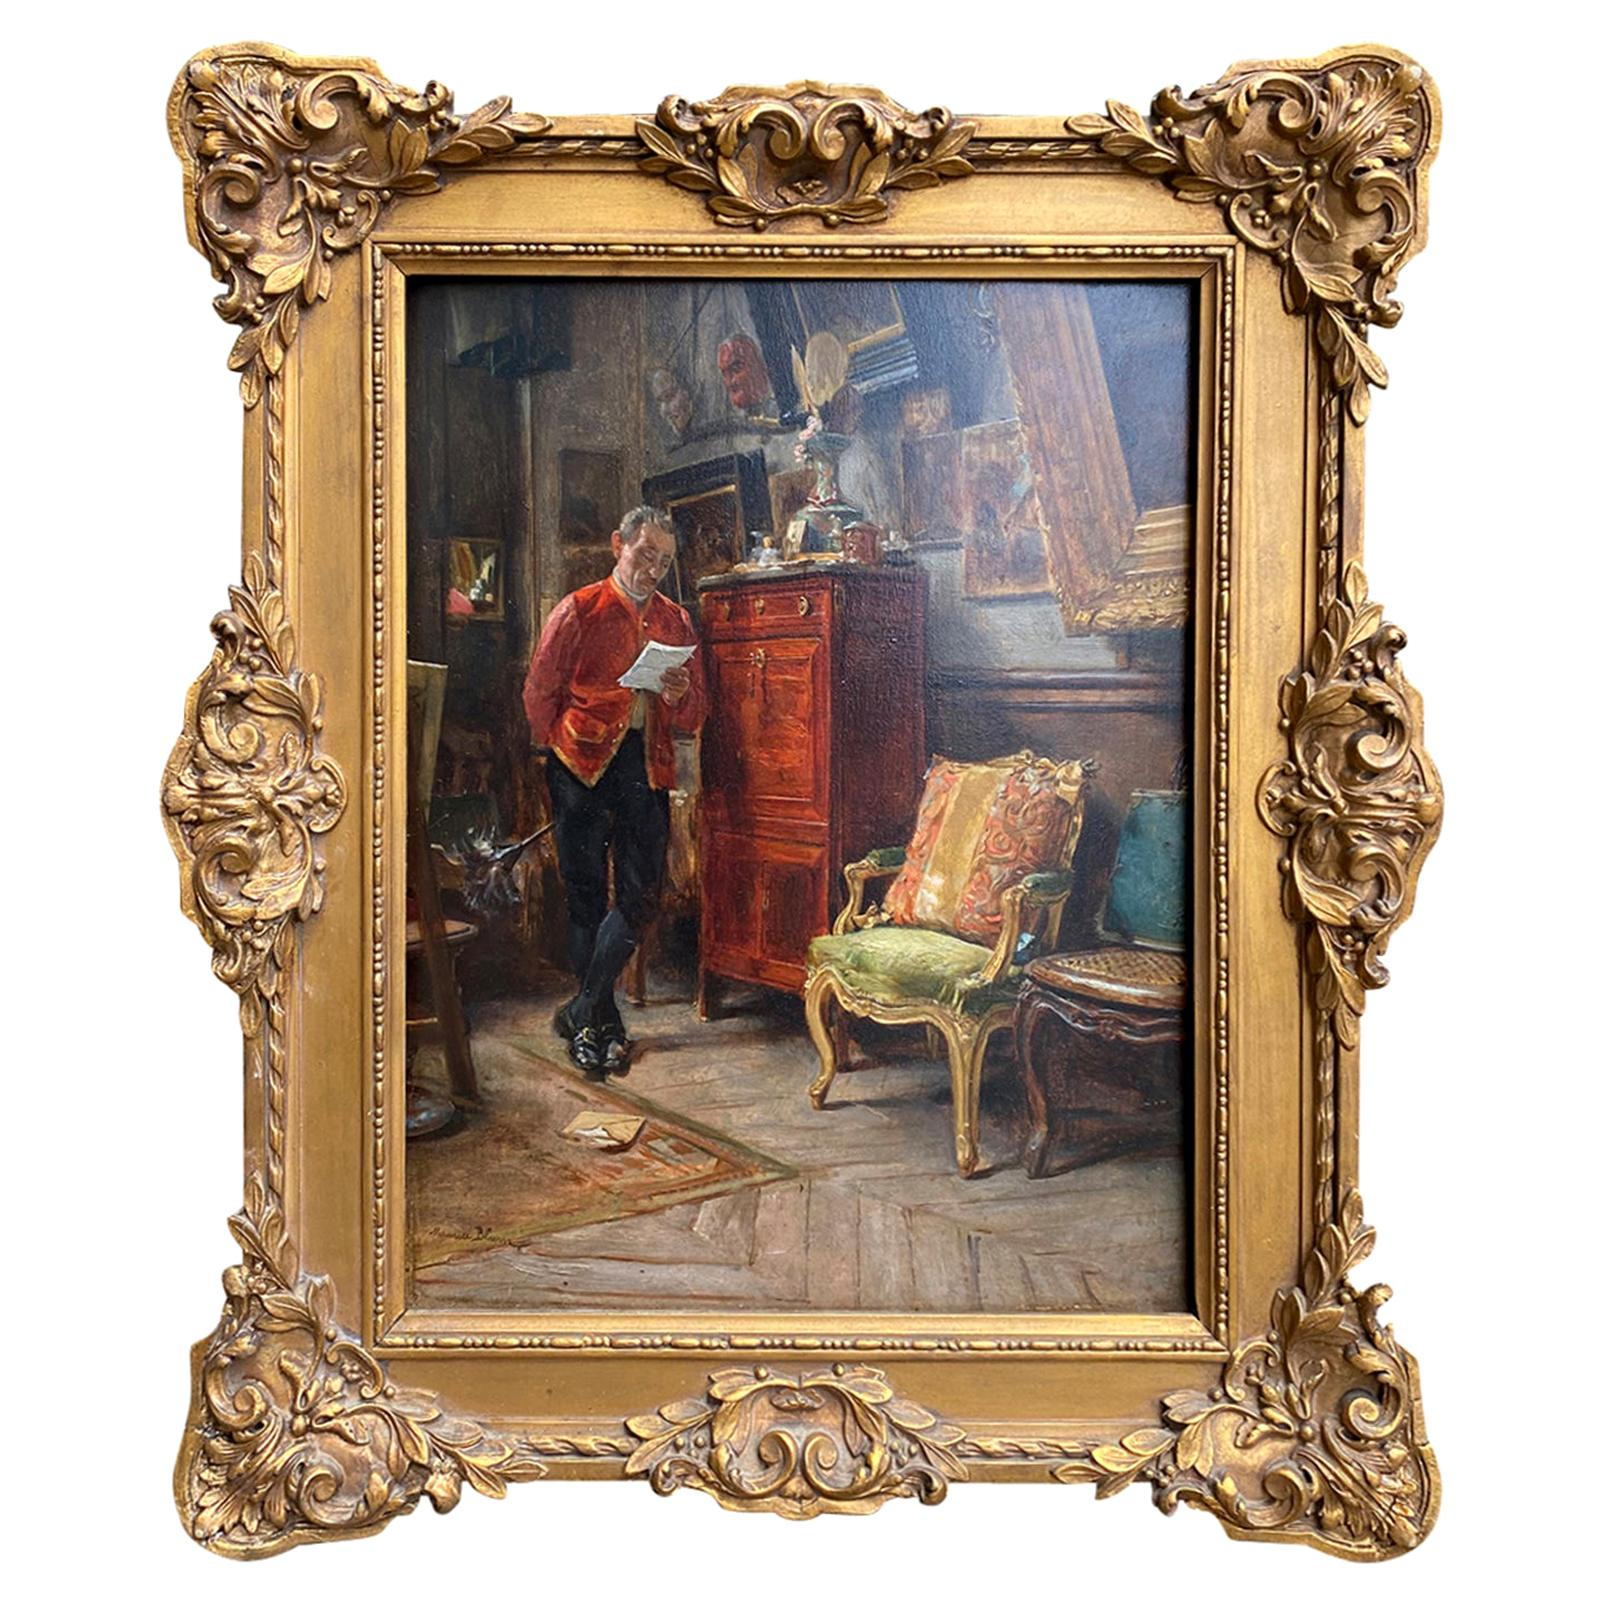 Signed Maurice Blum 'France 1832-1909' Oil Painting on Wood Panel of Butler